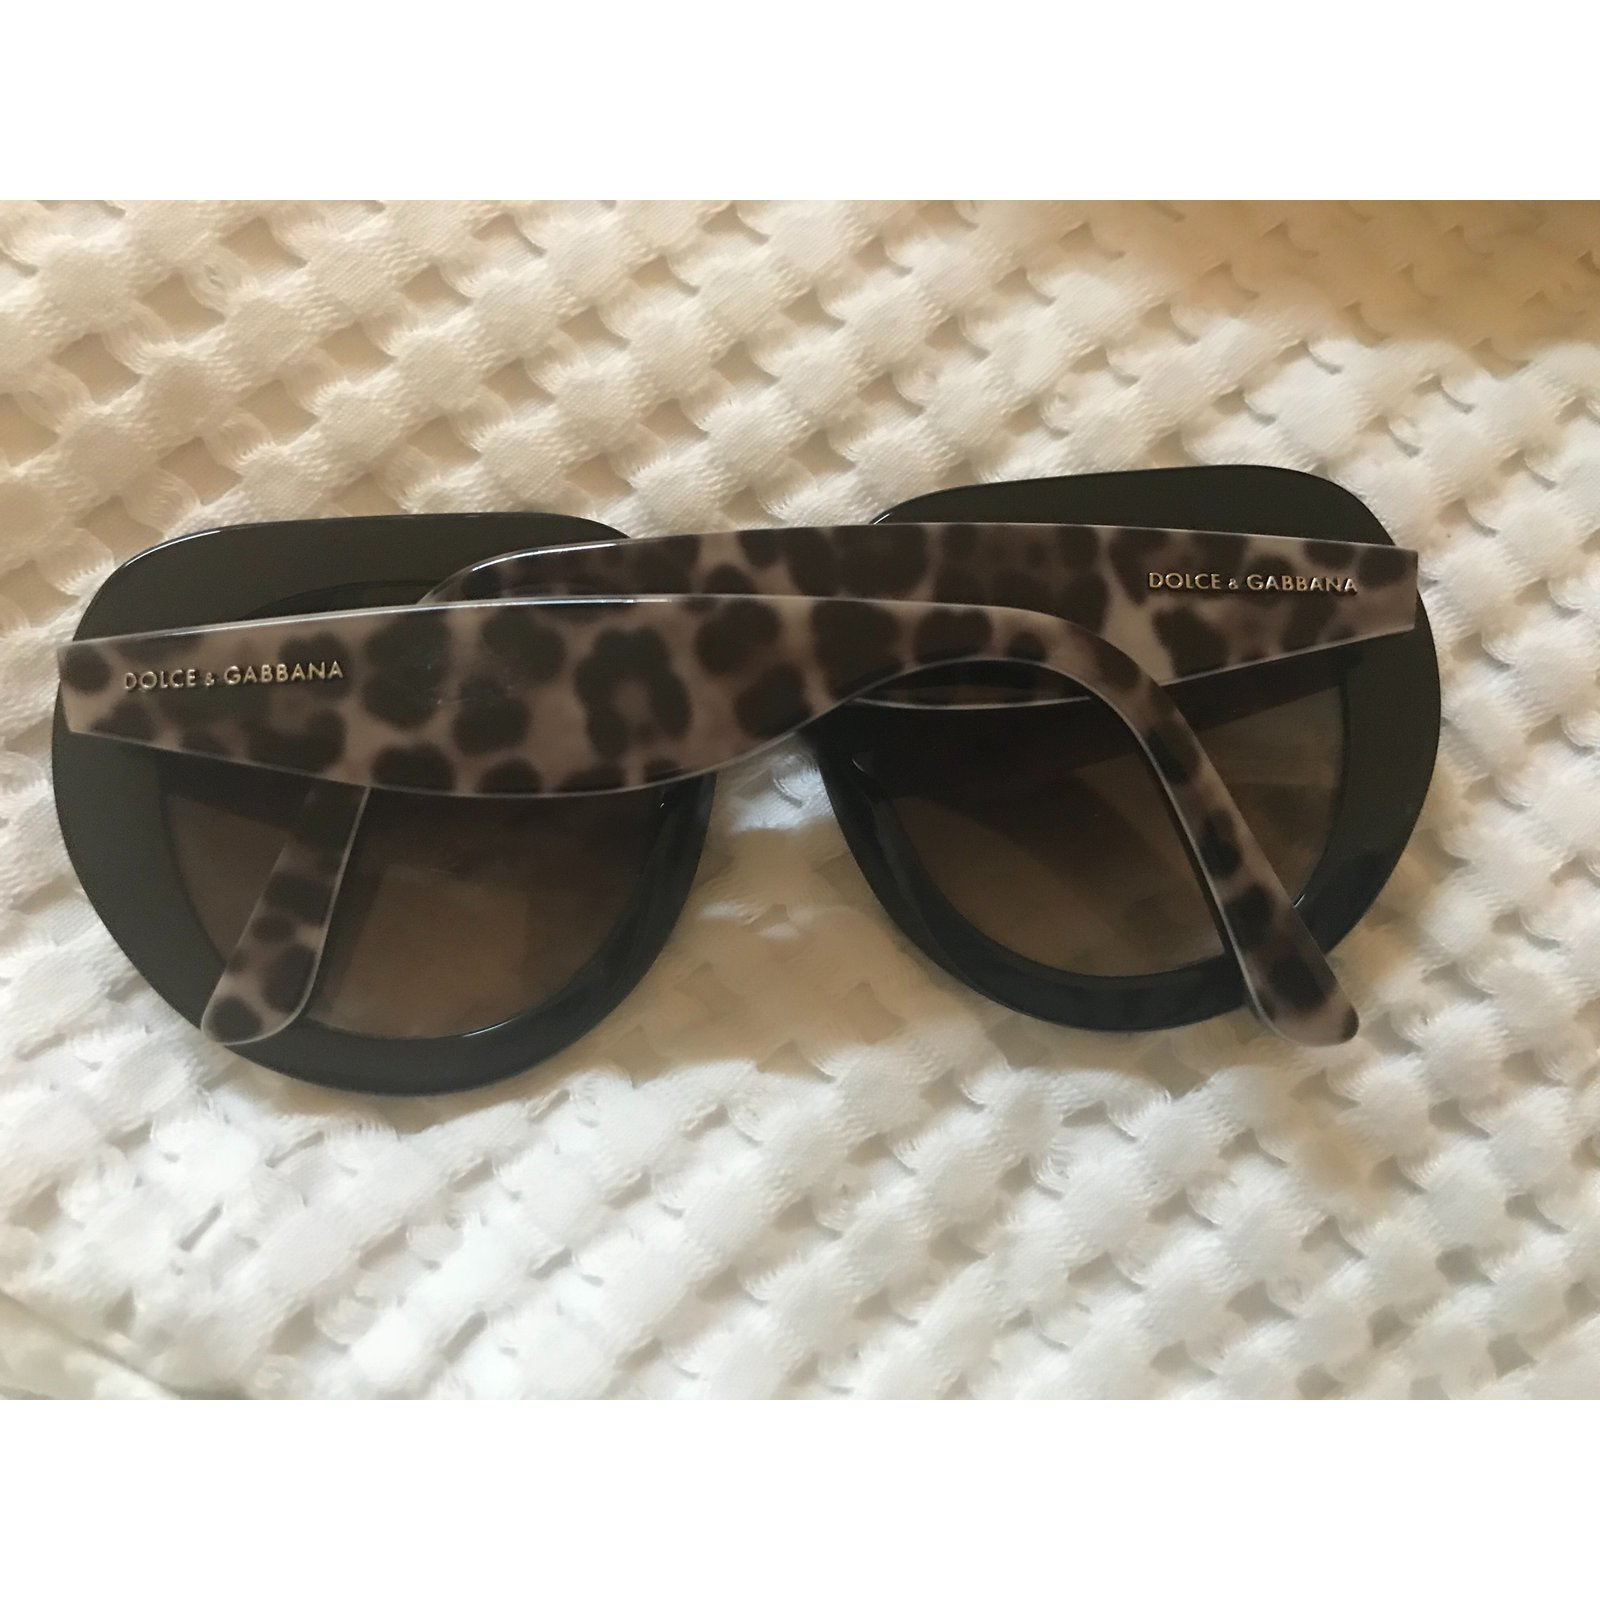 64f9a01984df Dolce & Gabbana Sunglasses Sunglasses Other Leopard print ref.93767 - Joli  Closet